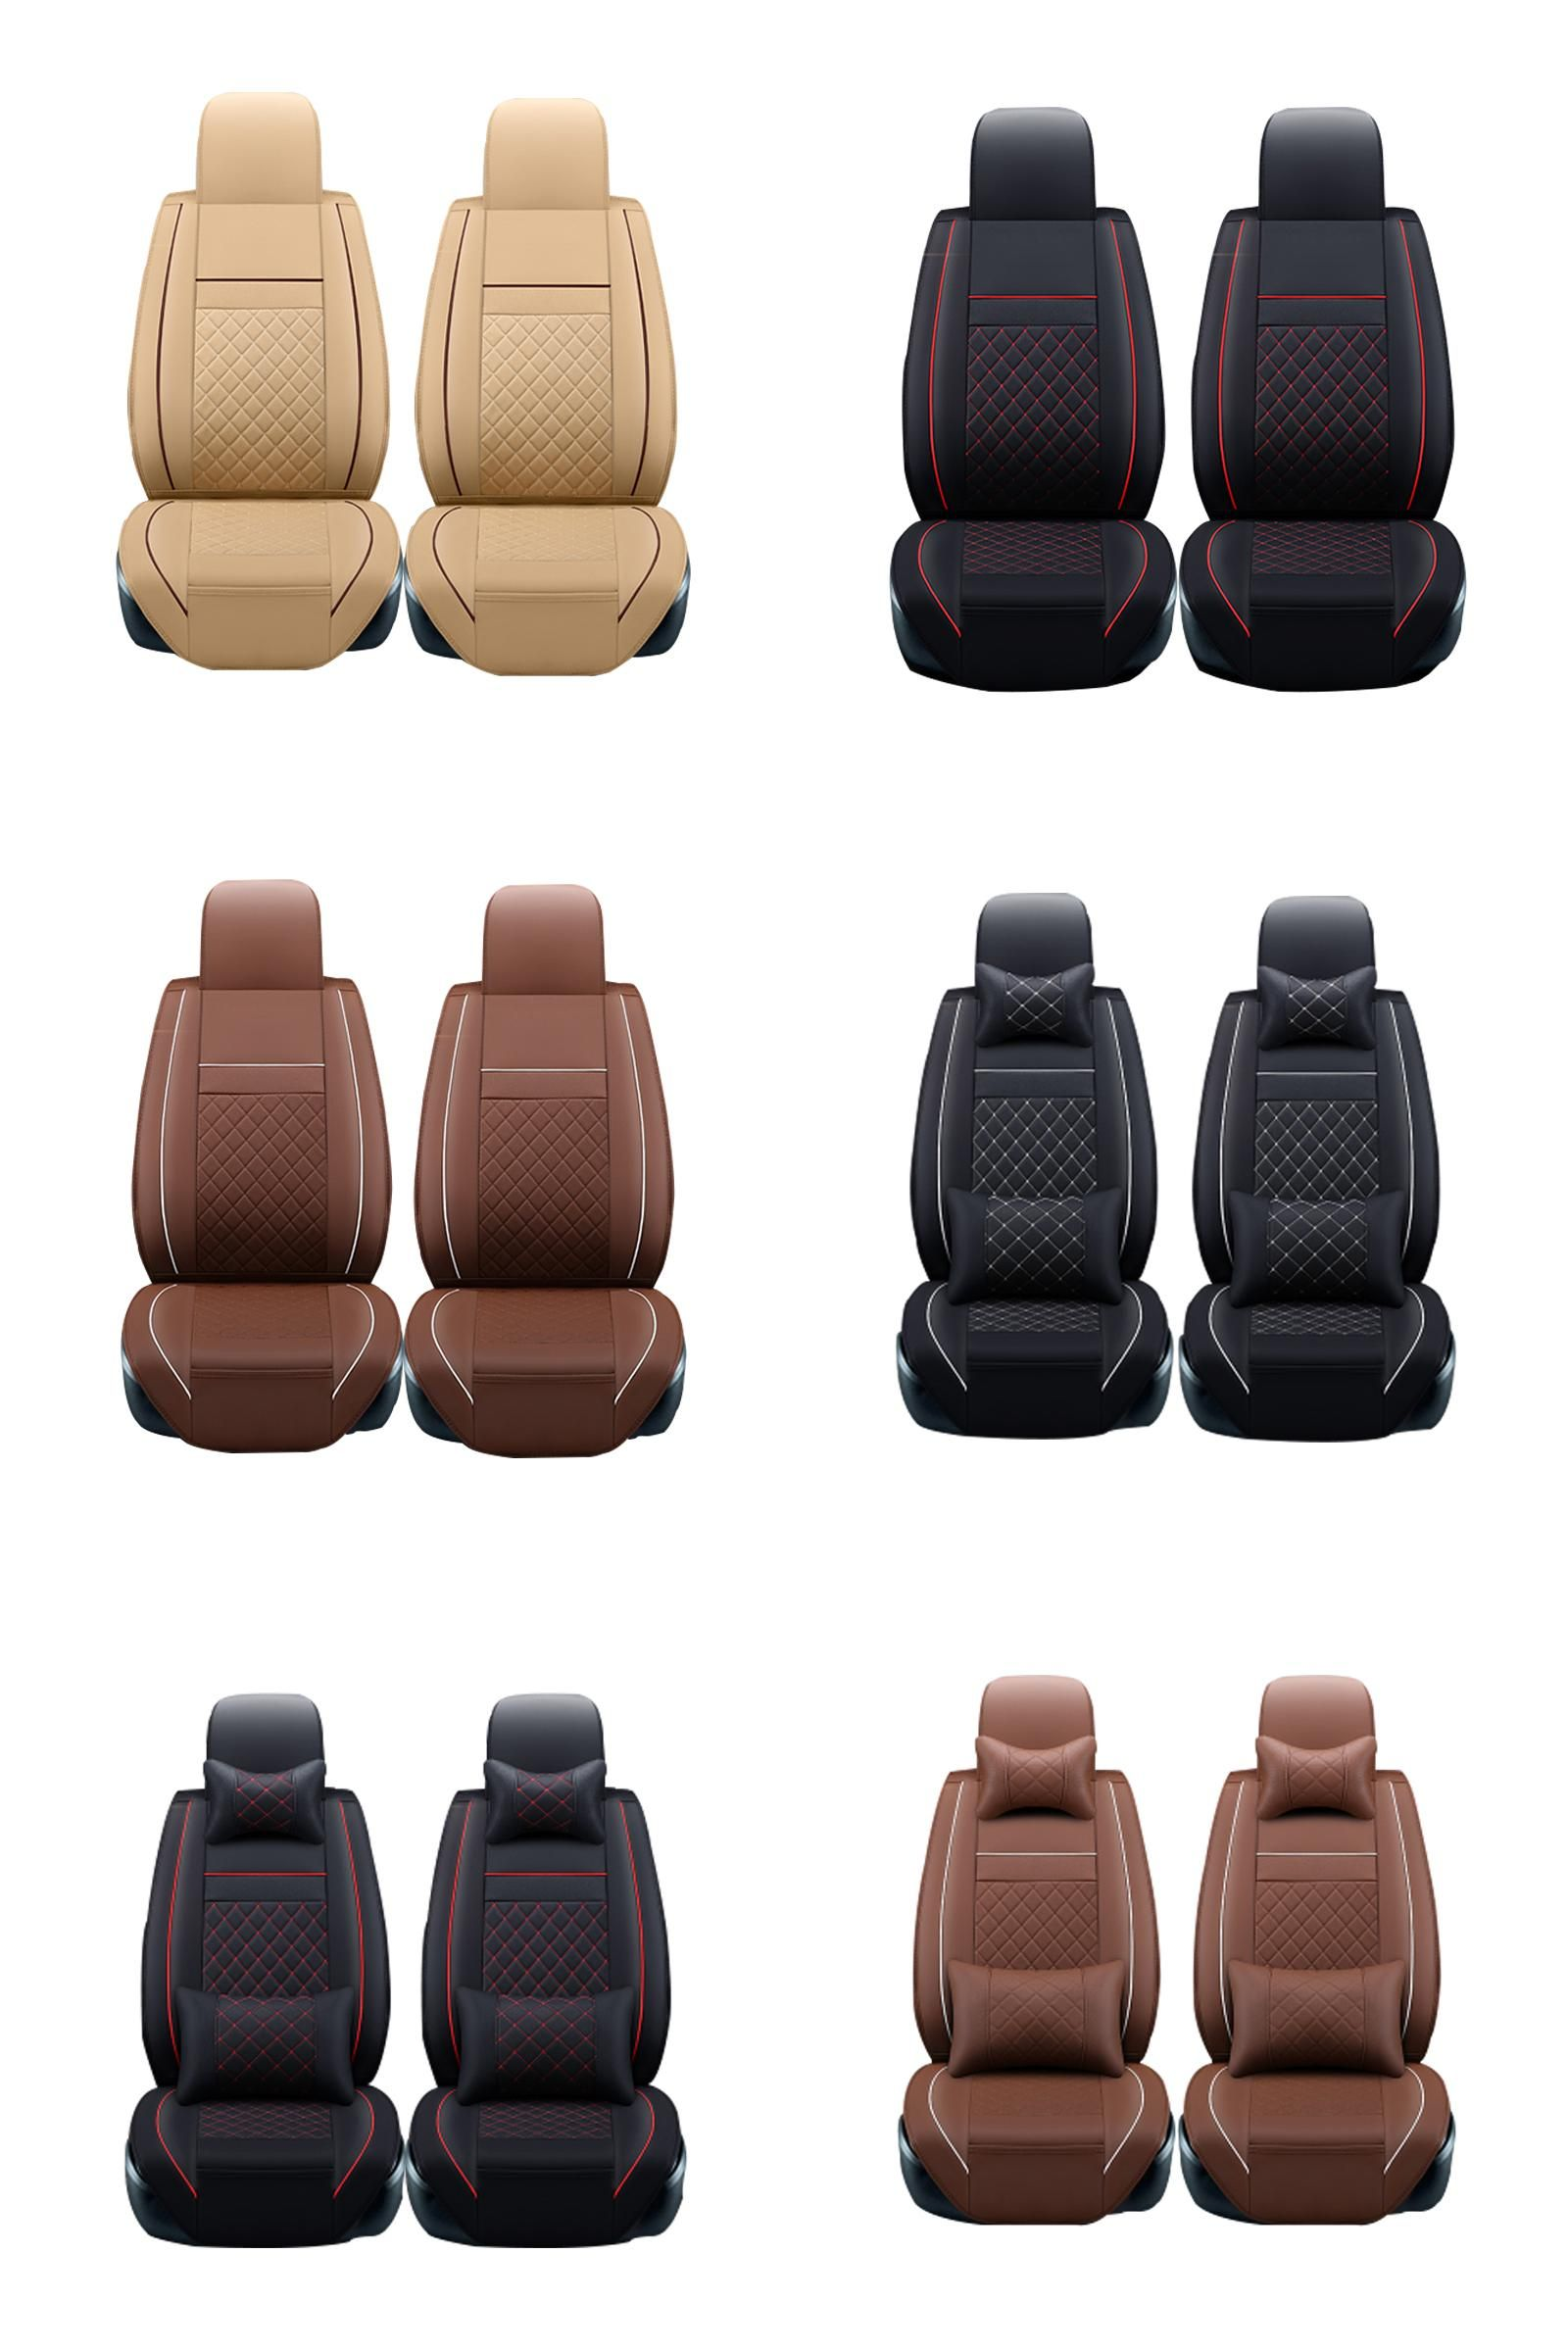 Visit to Buy Leather car seat covers For Suzuki Swift Wagon GRAND